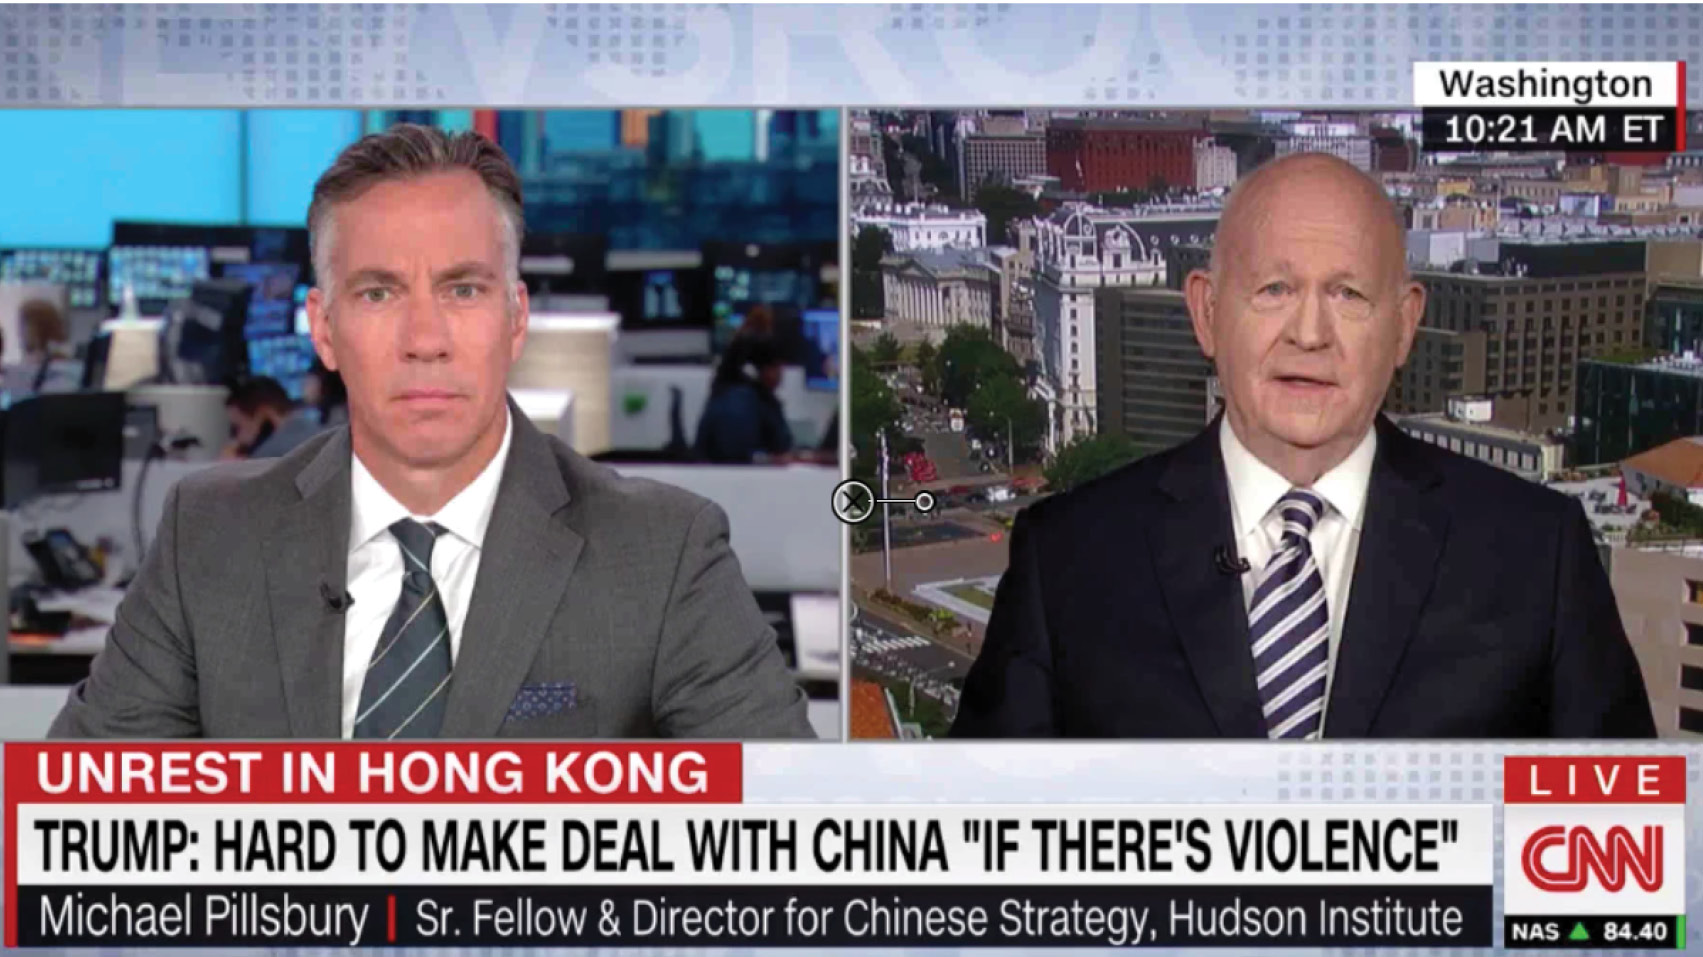 Michael Pillsbury discusses the latest on the Hong Kong protests and how they could impact the U.S.-China trade talks.